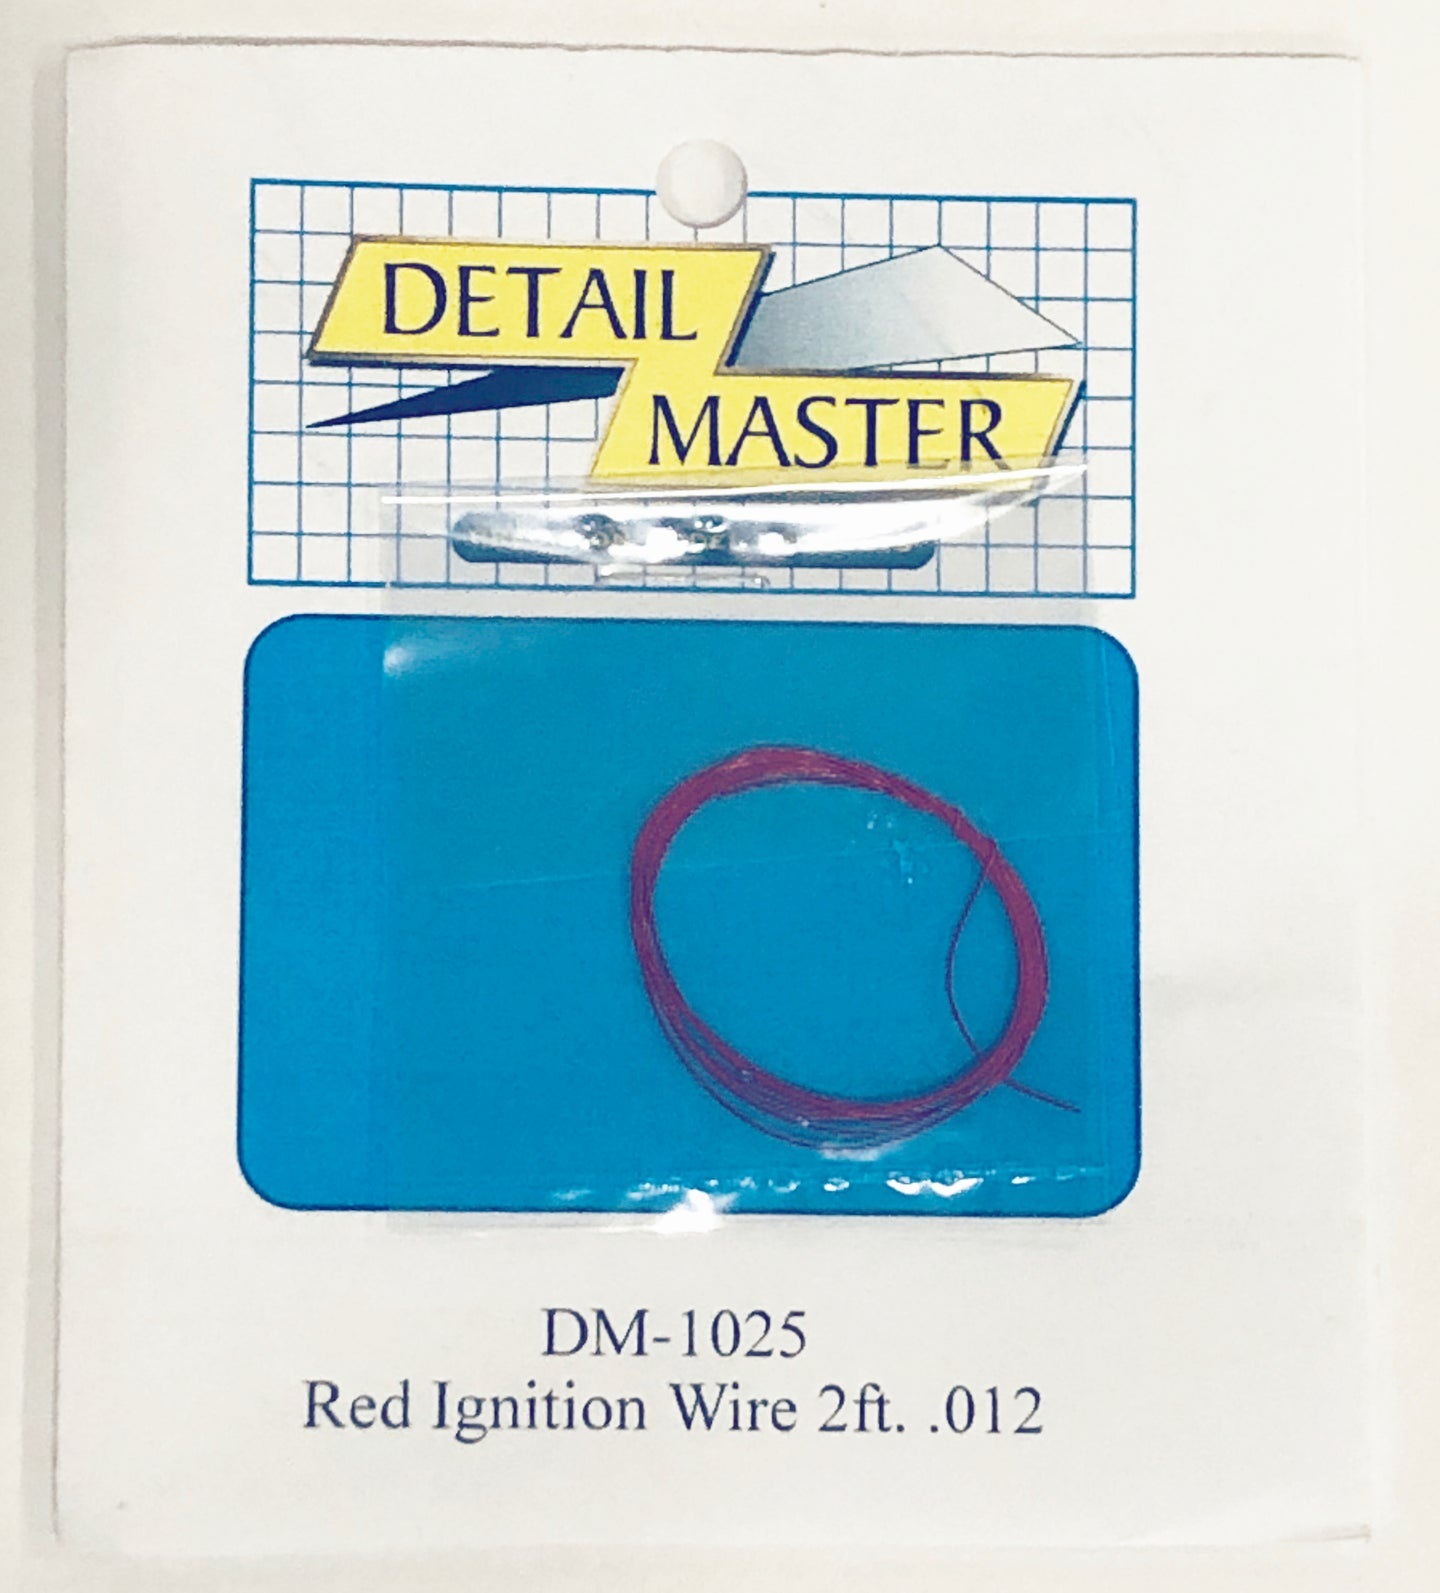 Detail Master 1/24 - 1/25 Ignition Wire Red 2ft DM-1025